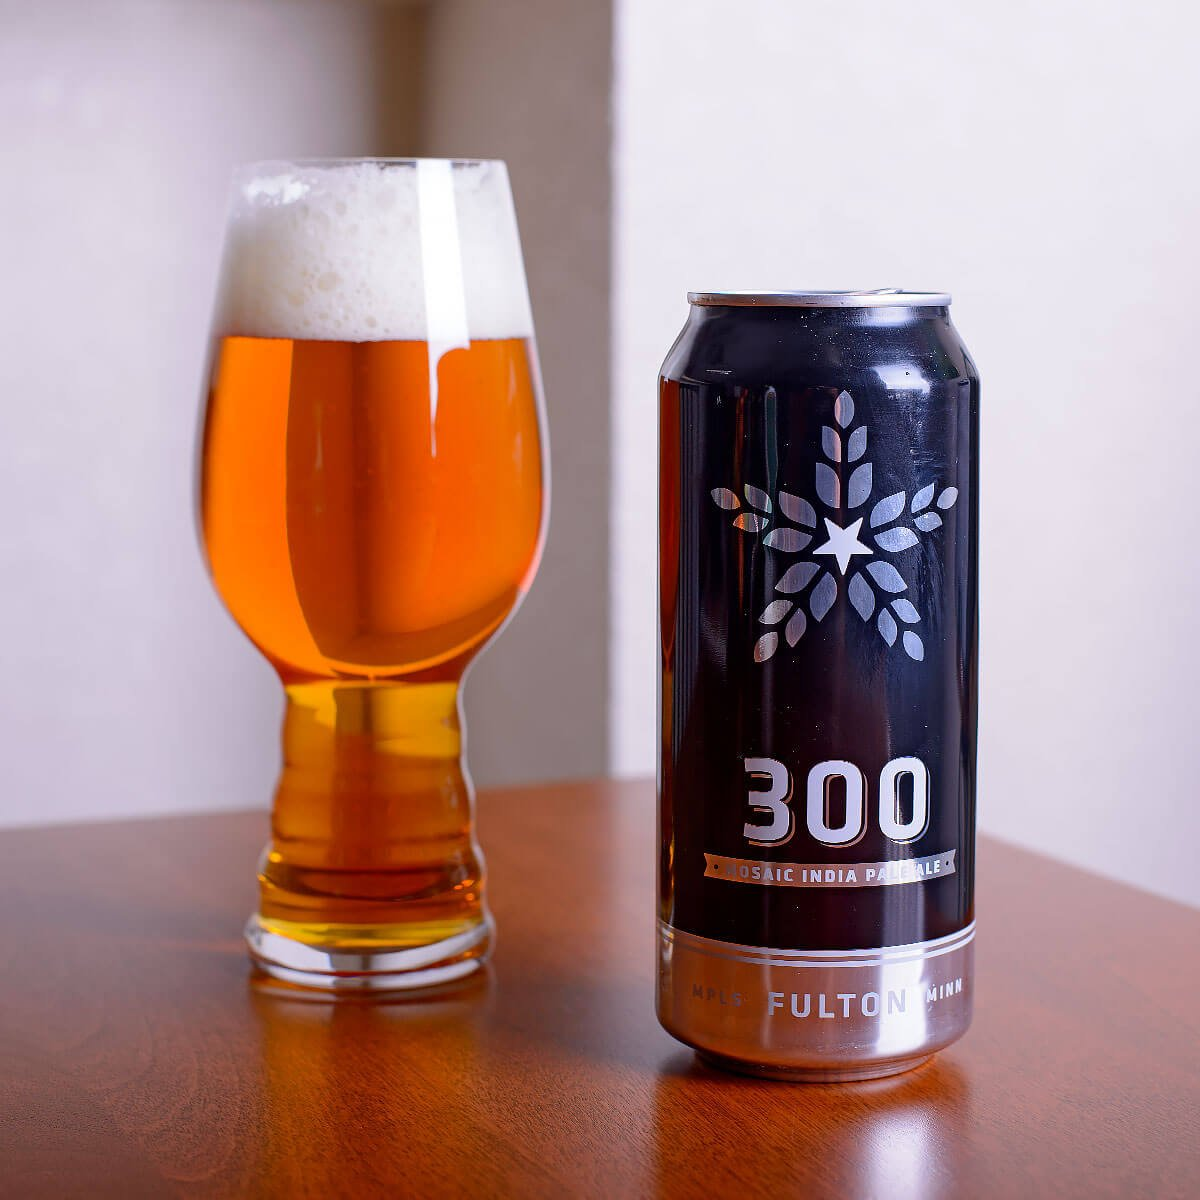 300 is an American IPA by Fulton Beer that wonderfully balances hoppy pine and citrus with biscuit, tropical fruit, and caramel.